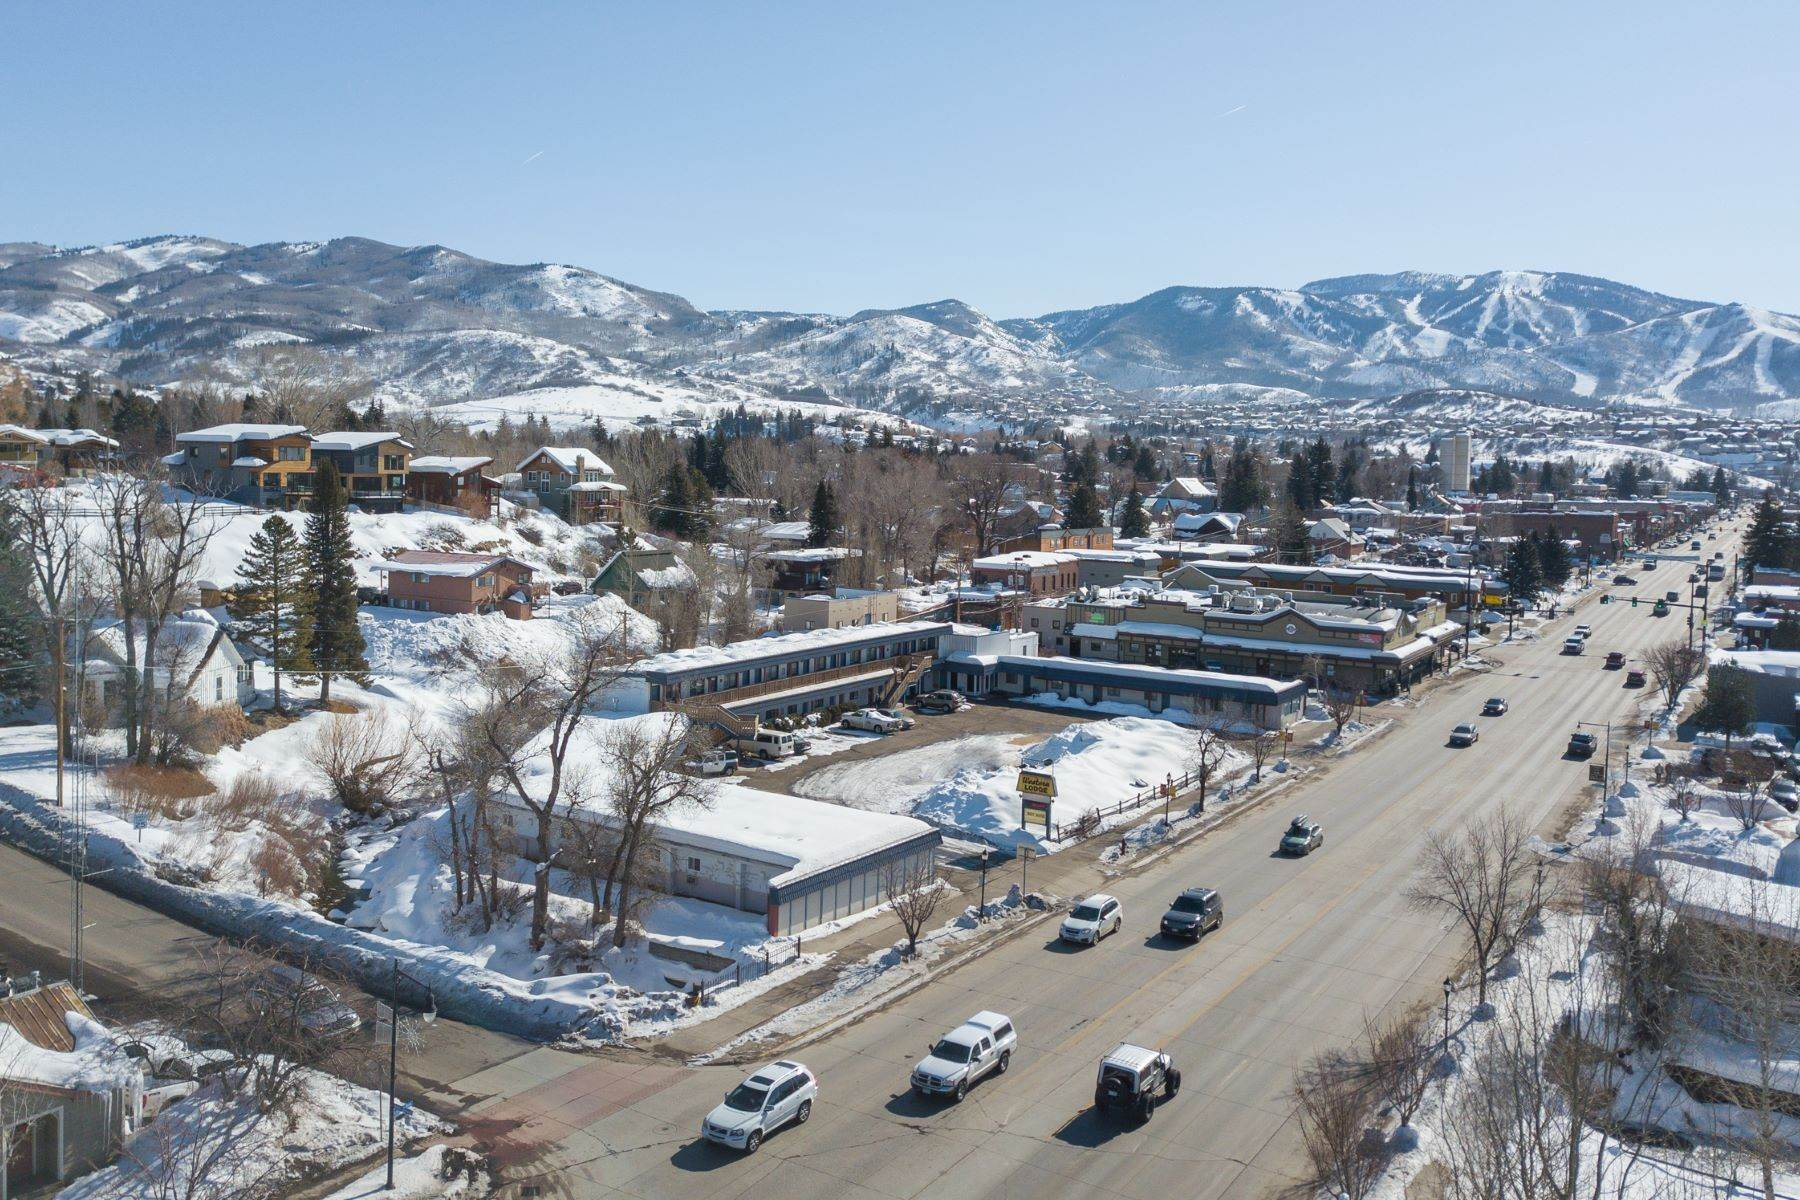 Property for Sale at Gateway to Downtown Steamboat 1122 Lincoln Avenue Steamboat Springs, Colorado 80487 United States